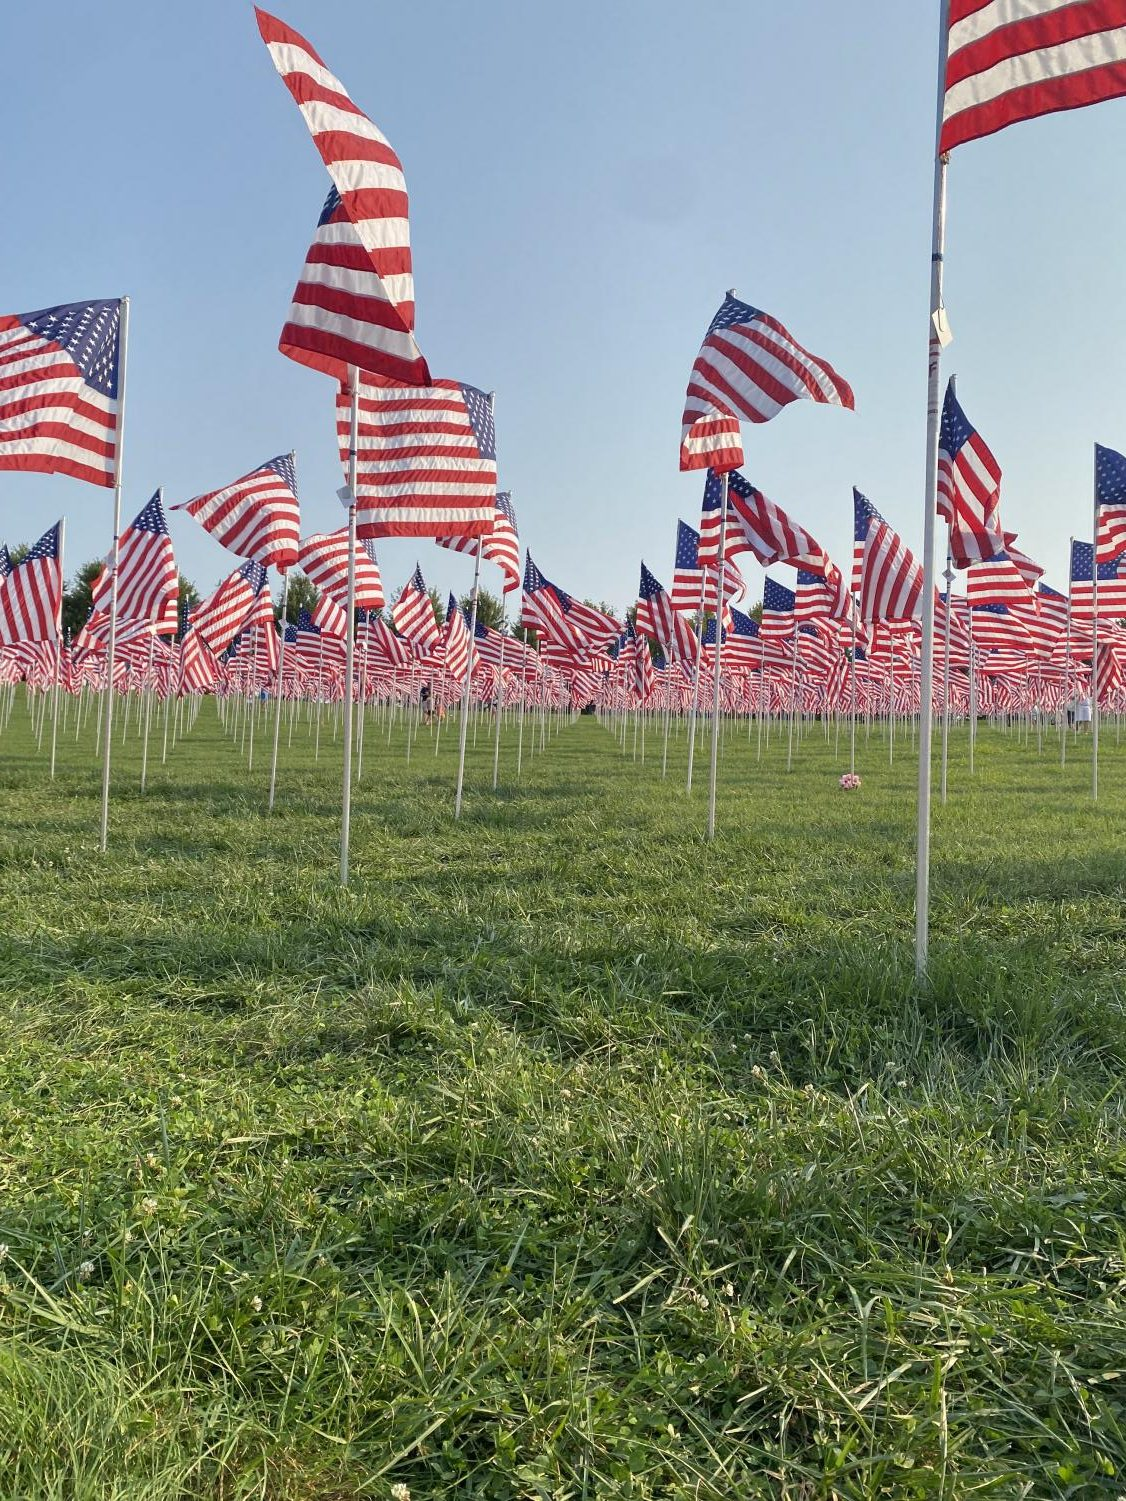 We+Will+Never+Forget%3A+The+Flags+of+Valor+Commemorate+the+20th+Anniversary+of+9%2F11